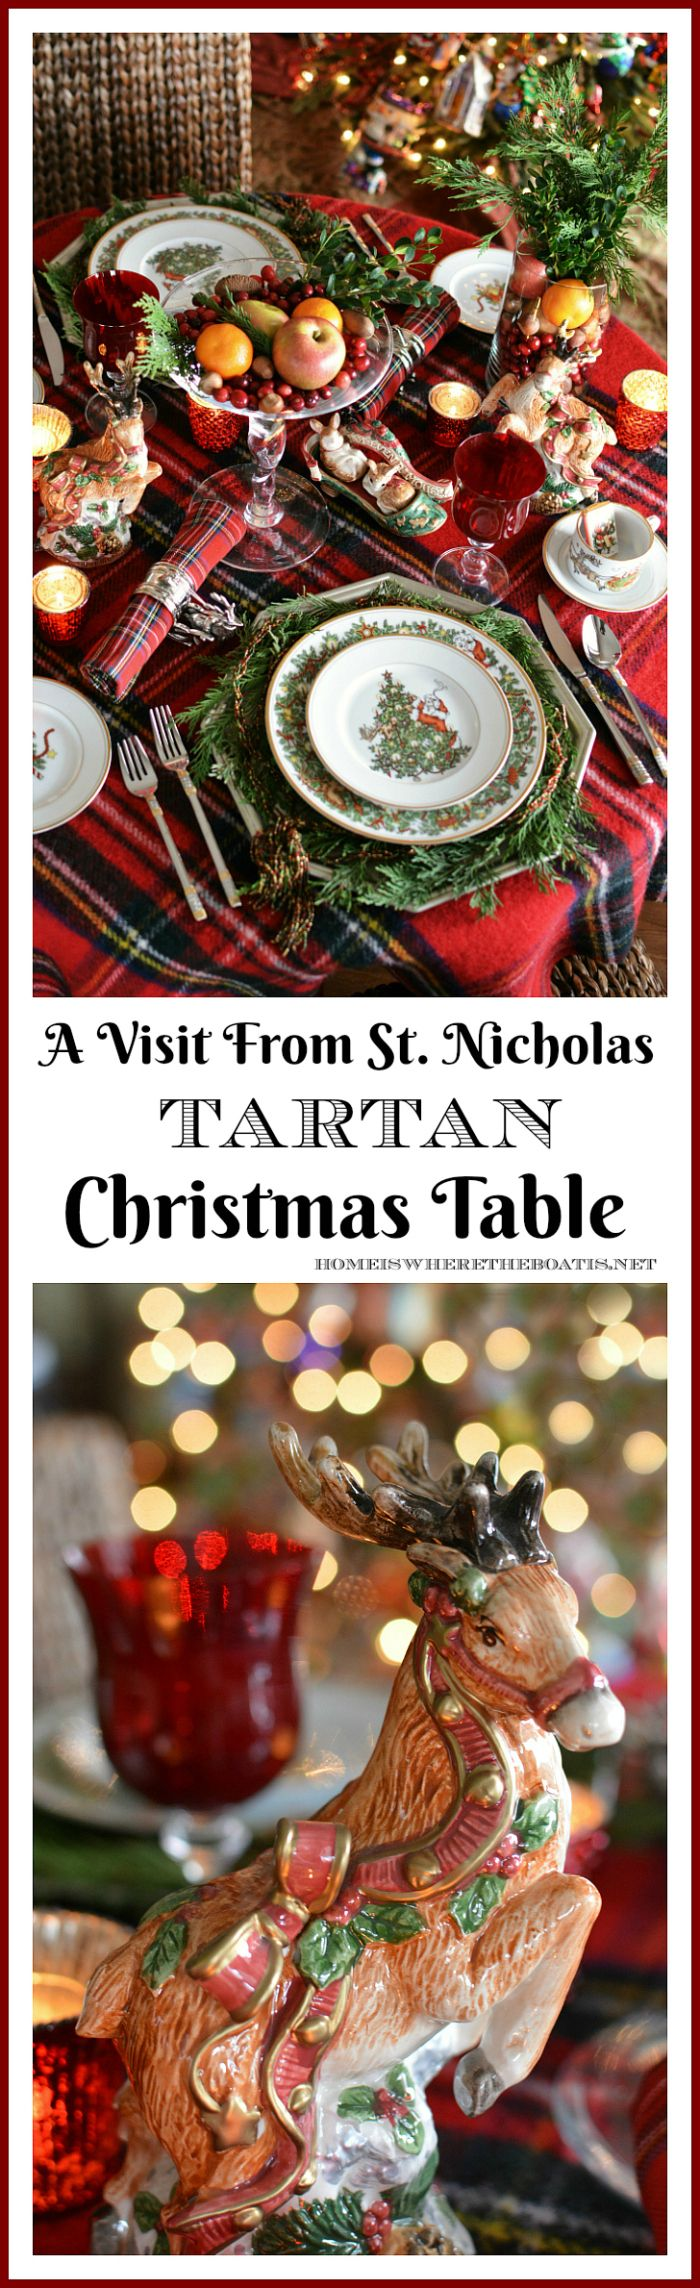 A Visit From St Nicholas Christmas Table  Homeiswheretheboatis #plaid  #tartan